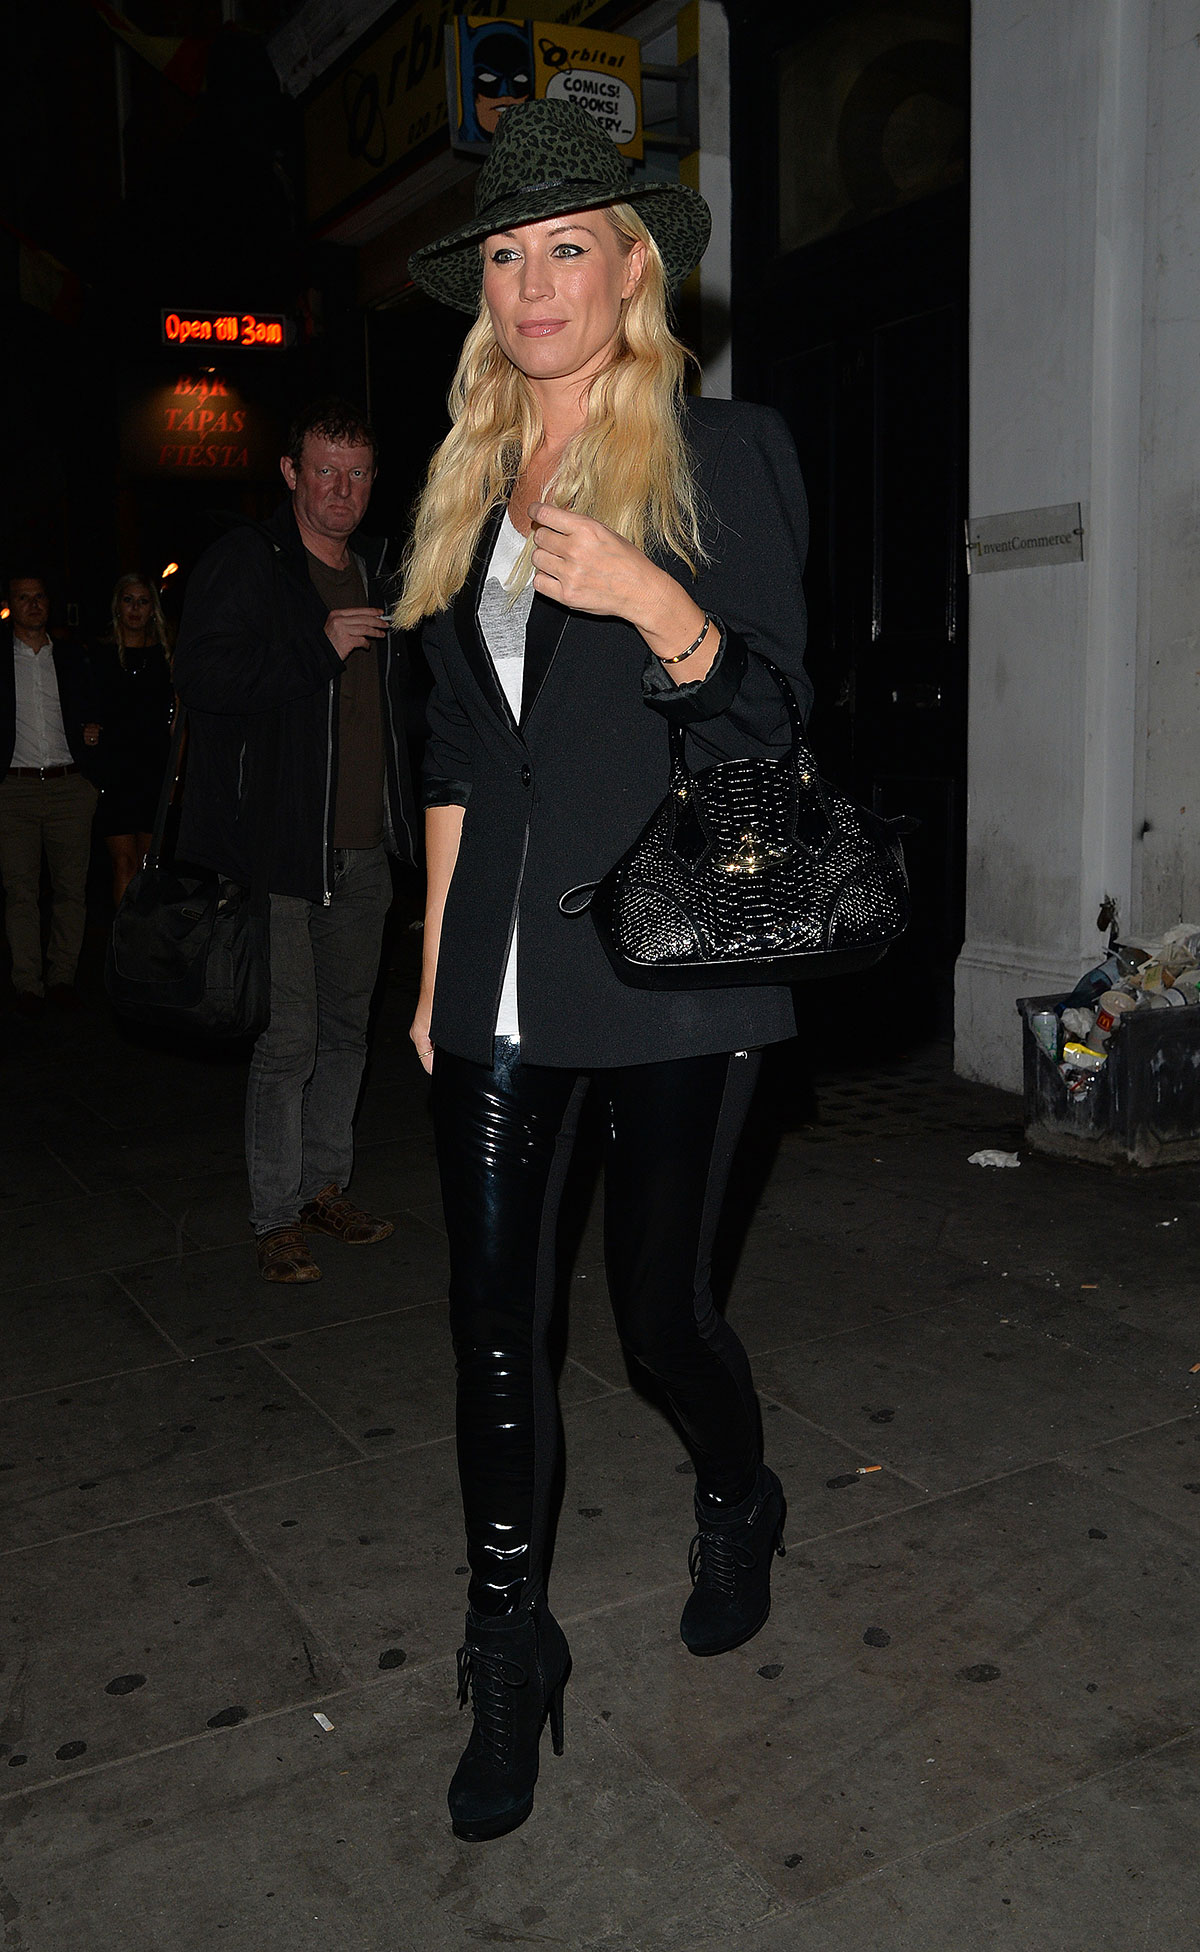 Denise Van Outen leaves the Arts theatre in London